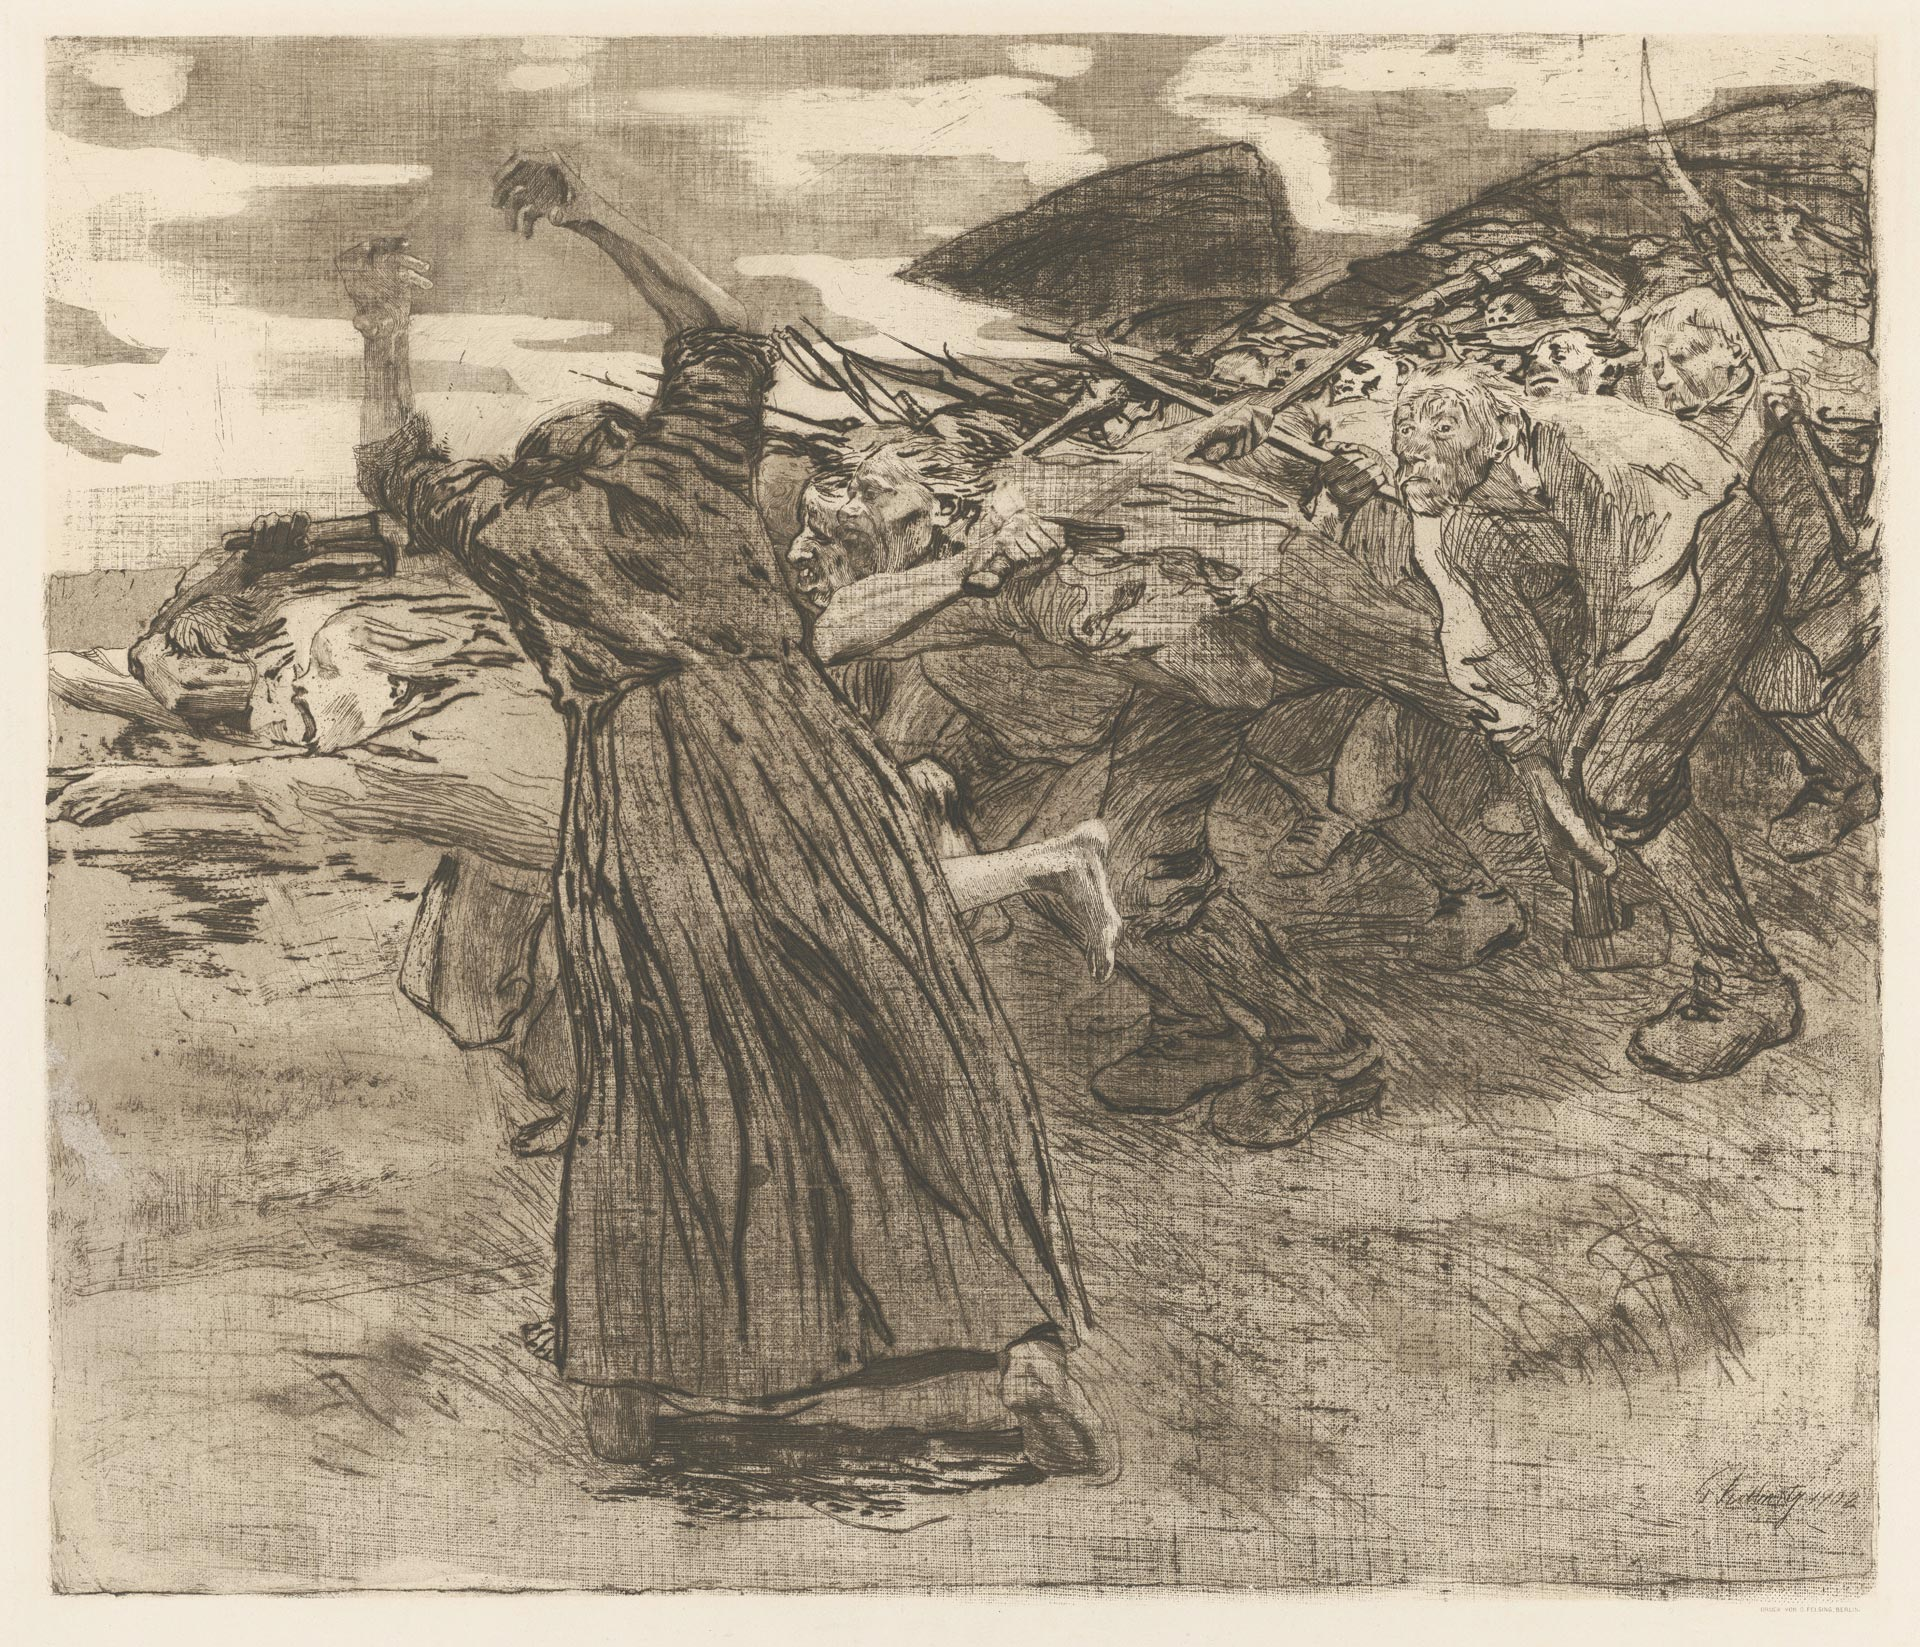 Käthe Kollwitz, Charge, sheet 5 of the cycle »Peasants War«, 1902/1903, line etching, drypoint, reservage and soft ground with imprint of two fabrics and Ziegler's transfer paper, Kn 70 VIII b, Cologne Kollwitz Collection © Käthe Kollwitz Museum Köln